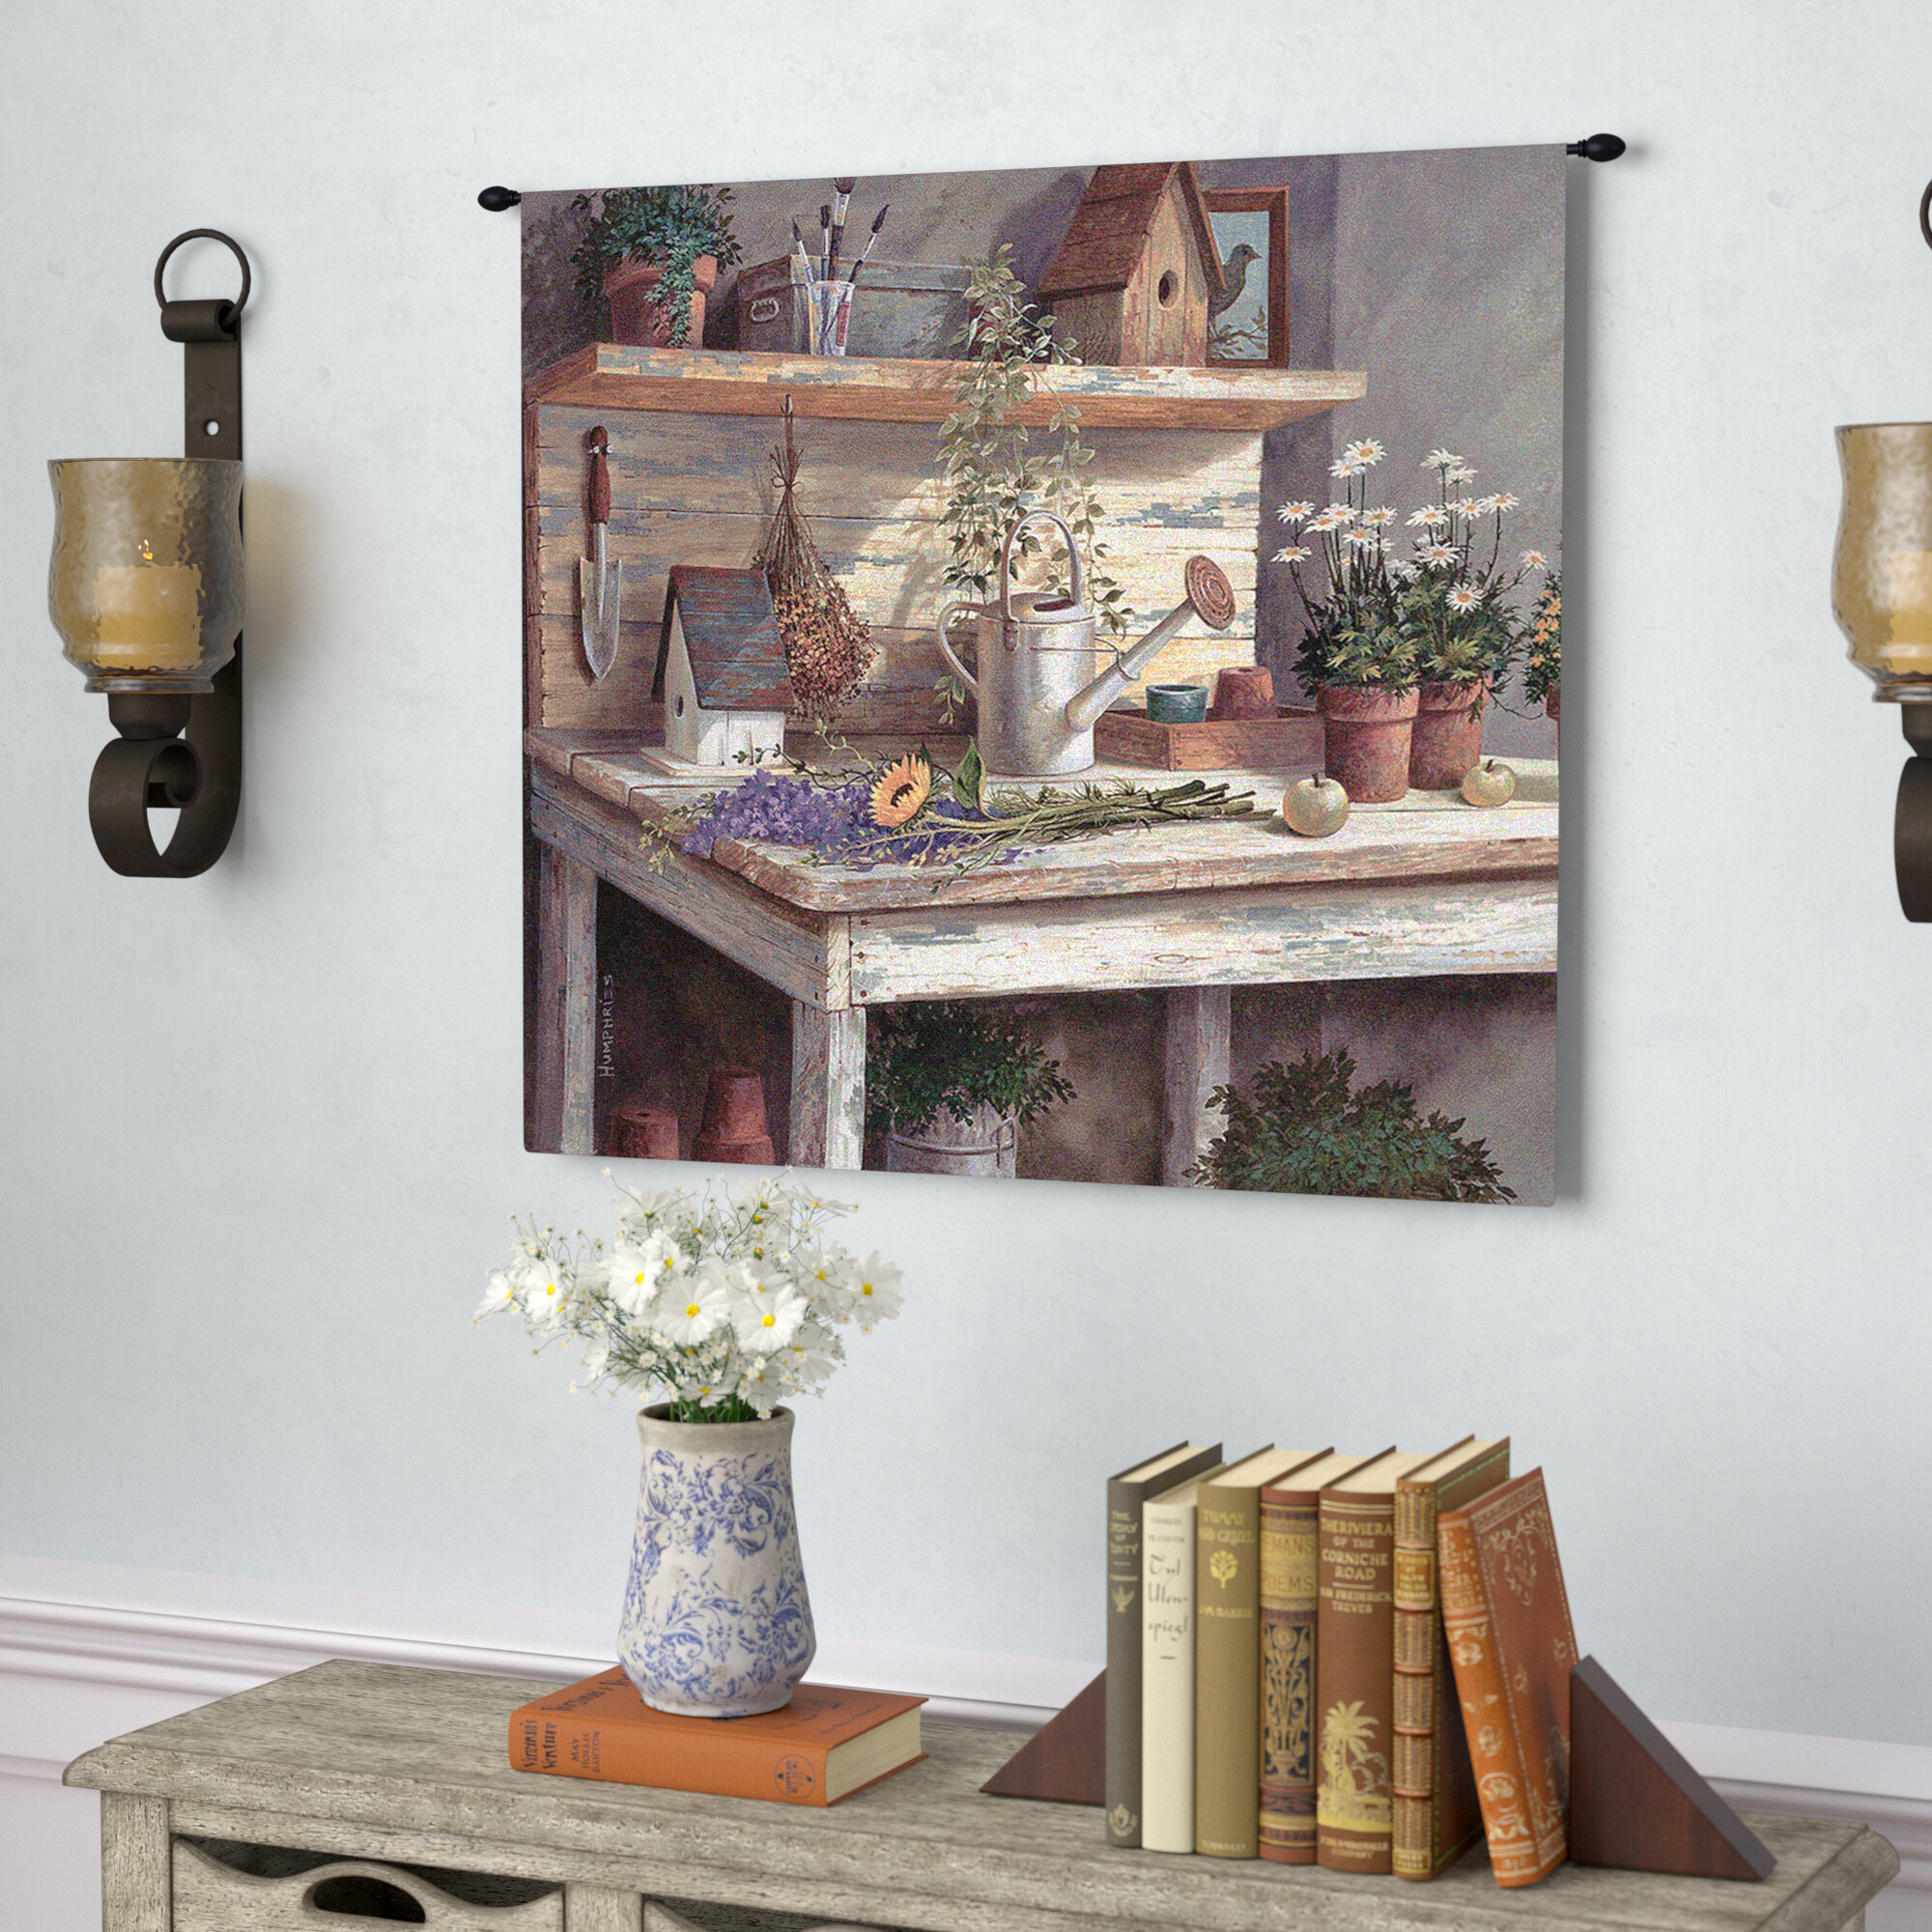 Simple Pleasures Tapestry Within Most Popular Blended Fabric Havenwood Chinoiserie Tapestries Rod Included (View 17 of 20)